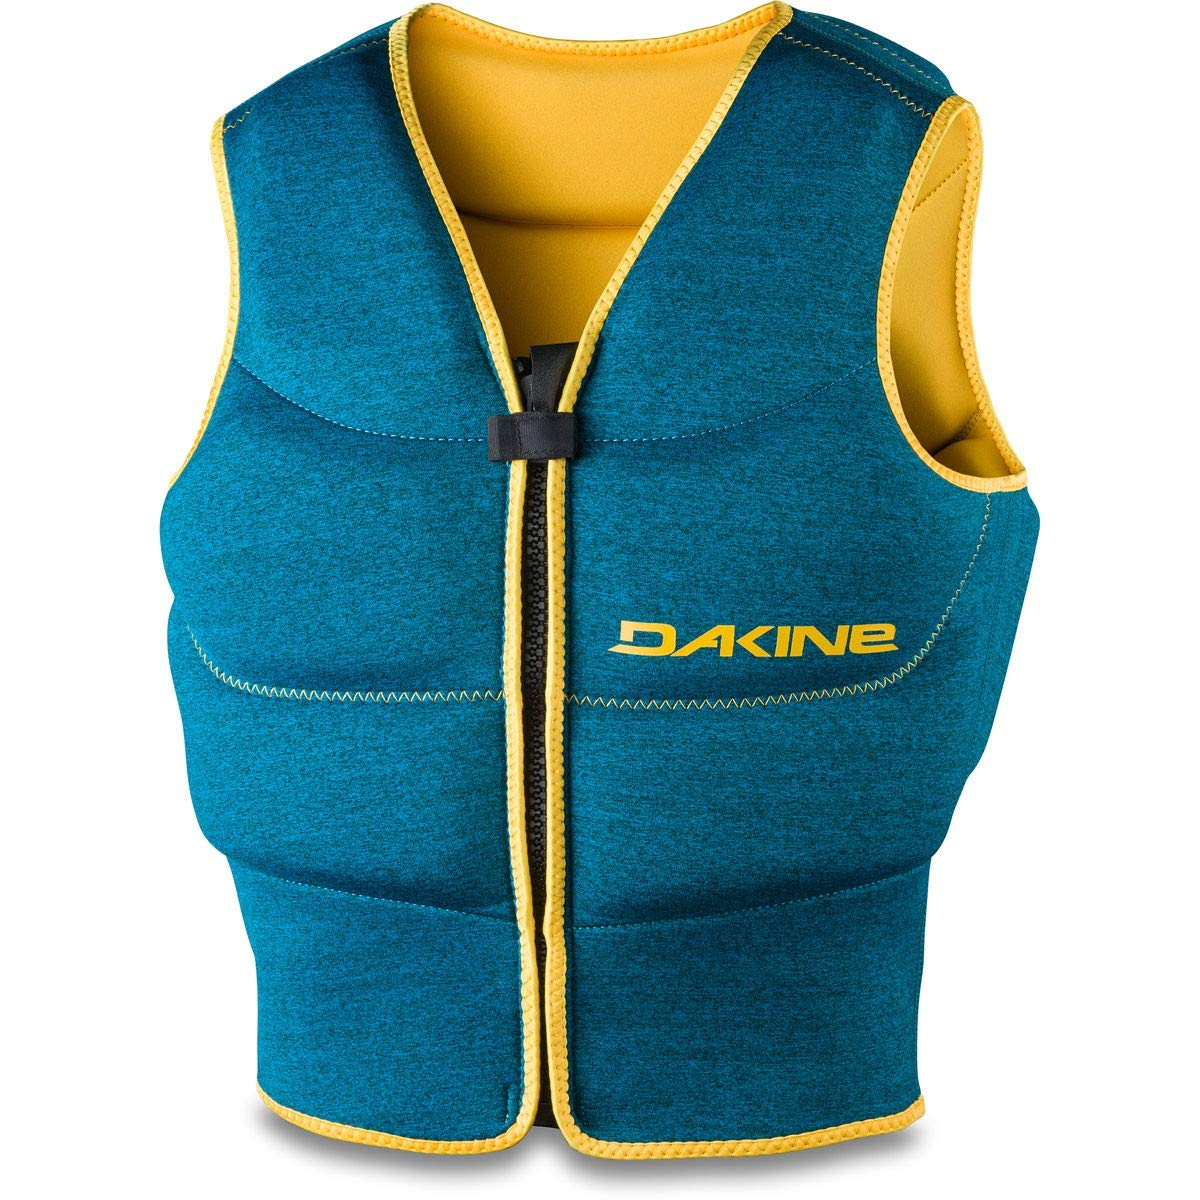 Dakine Surface Vest (Seaford, Small)